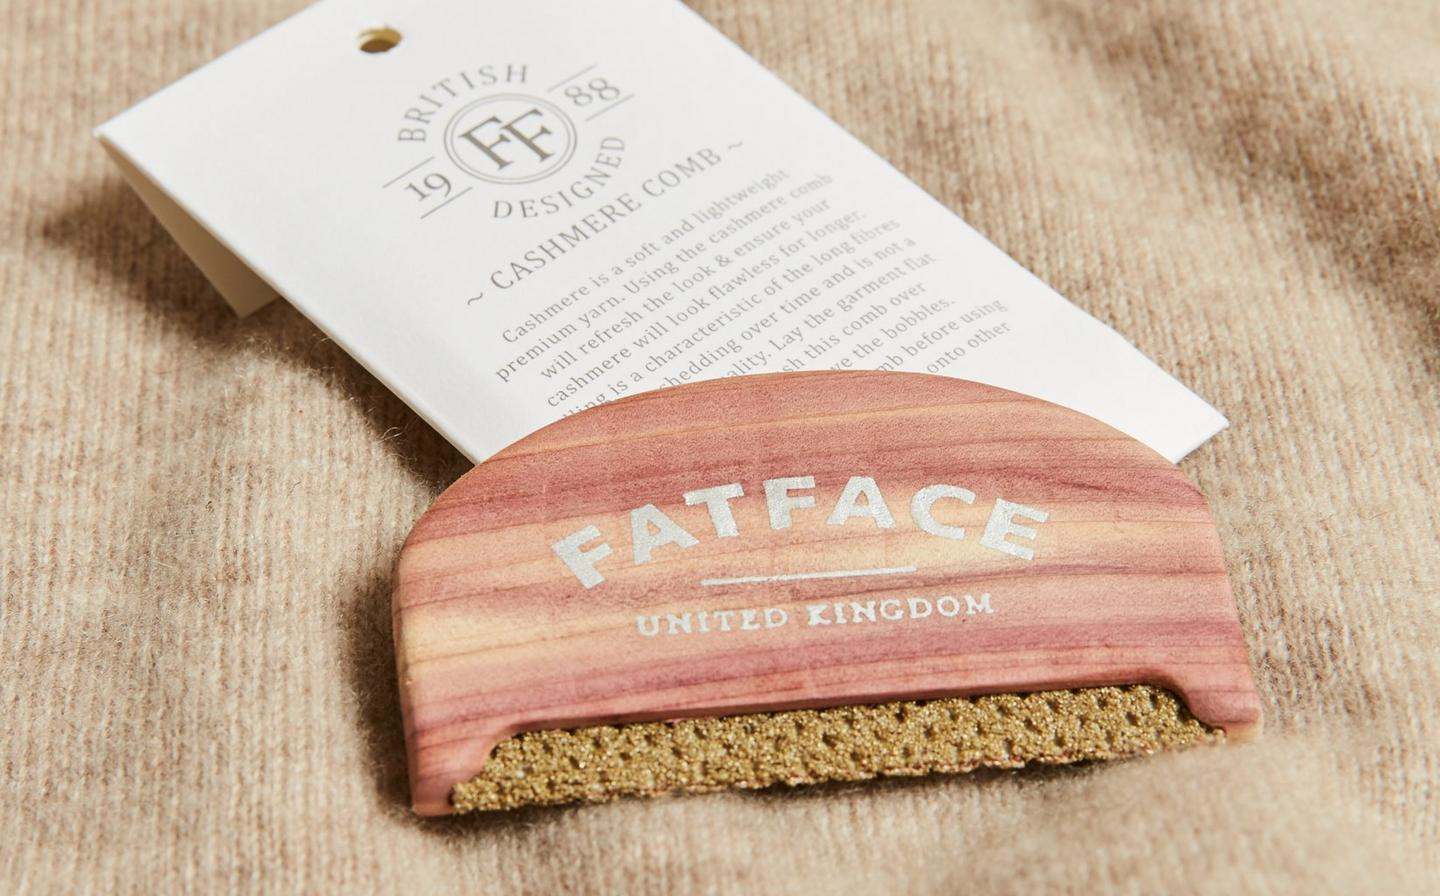 The complementary pilling comb from FatFace, which is used to delicately brush cashmere